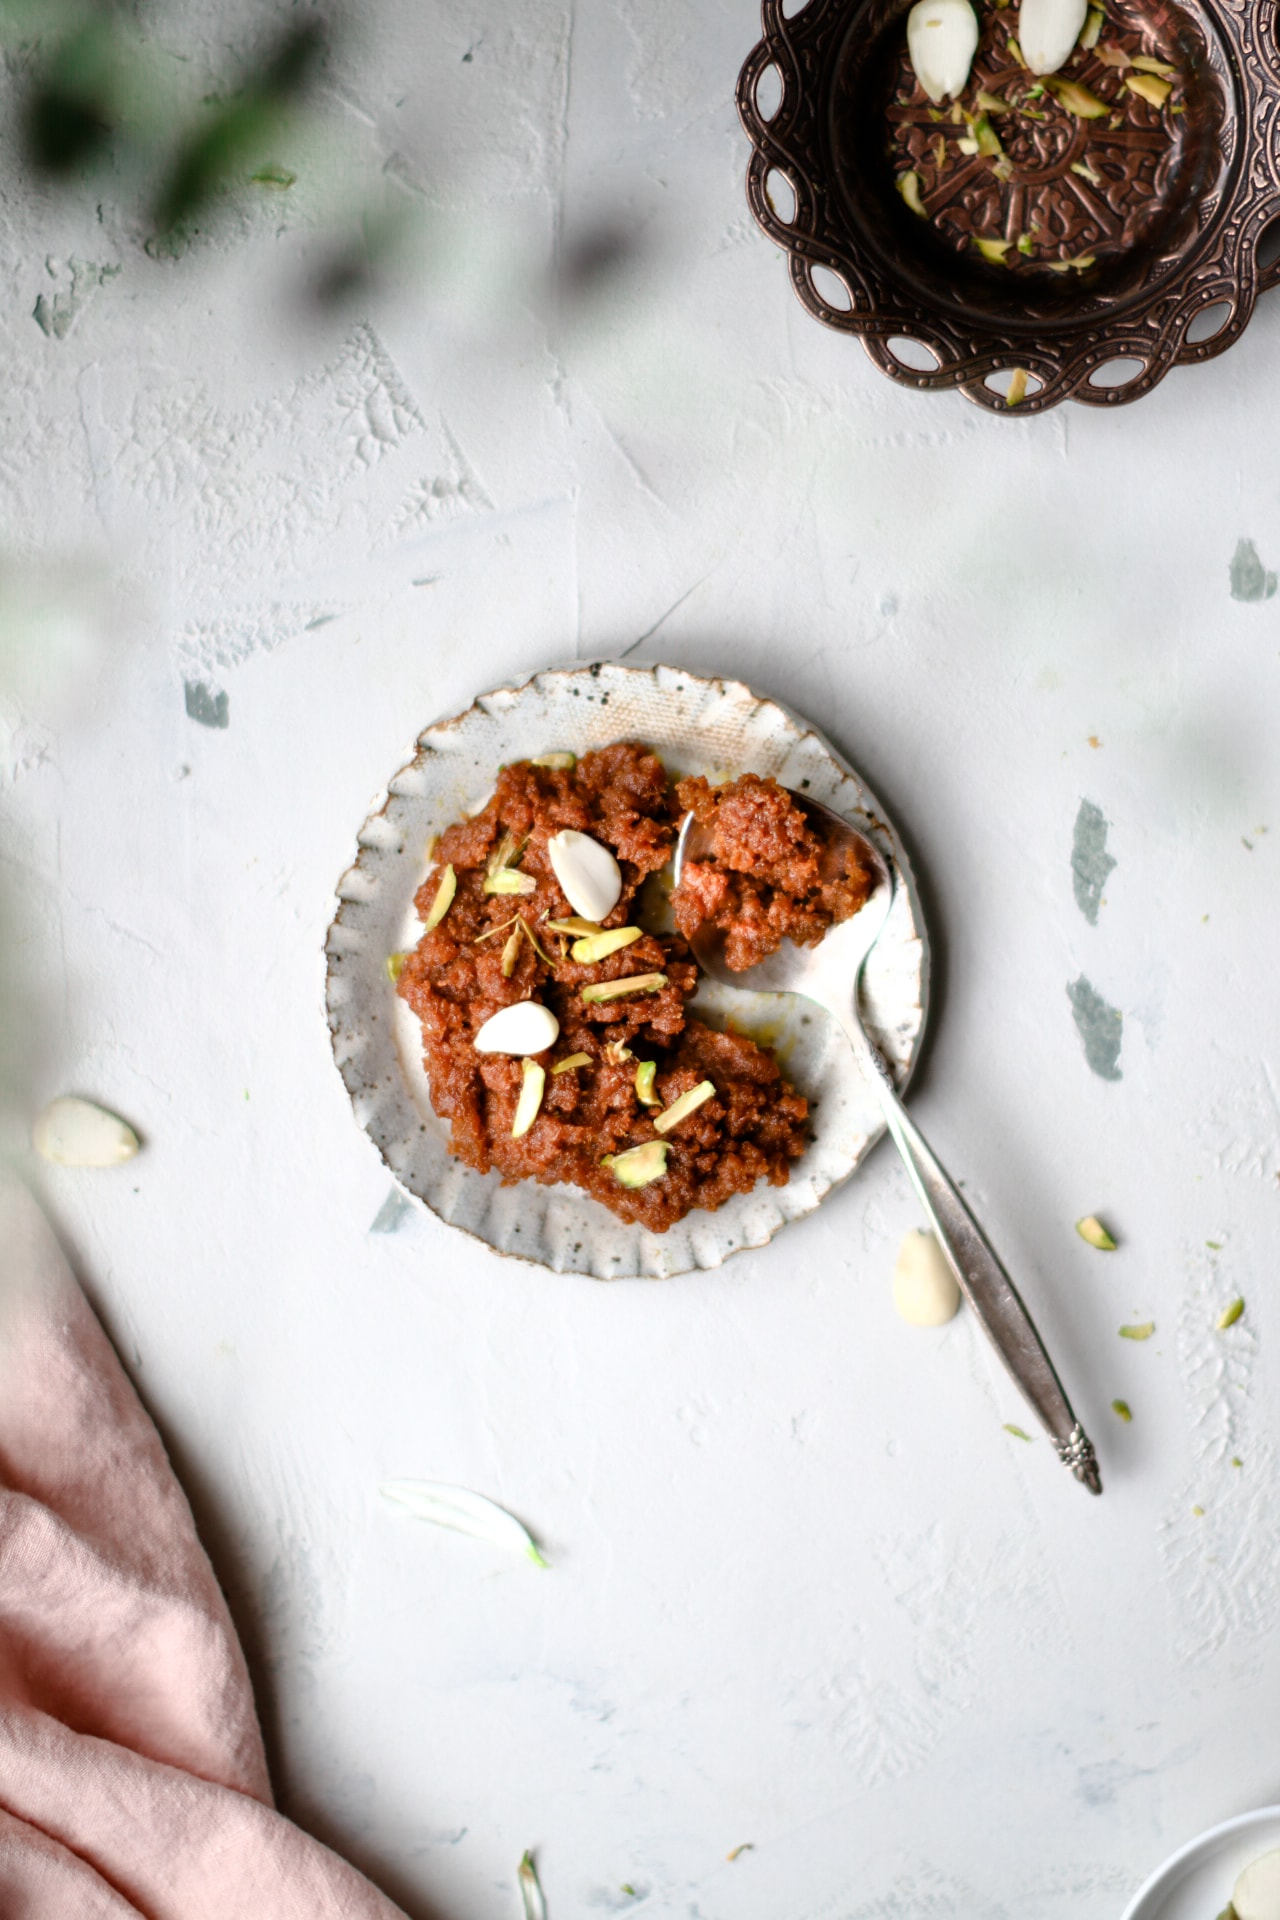 Top view of Instant Pot Carrot Halwa on a small plate with a silver spoon.